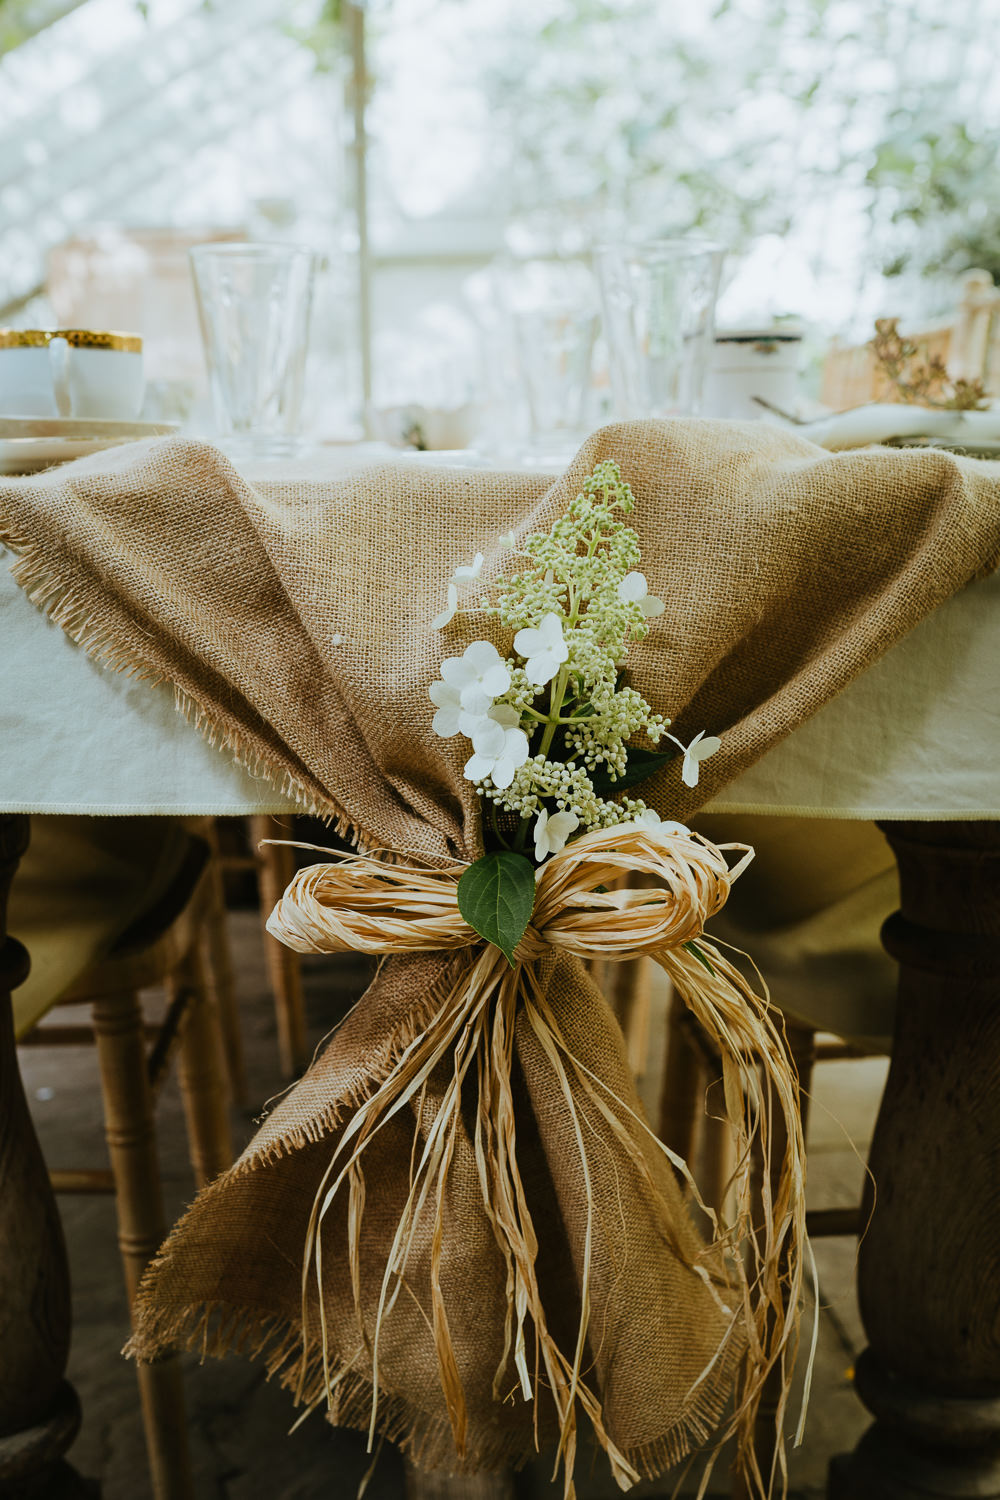 Hessian Burlap Chairs Flowers Micro Wedding Nicola Dawson Photography